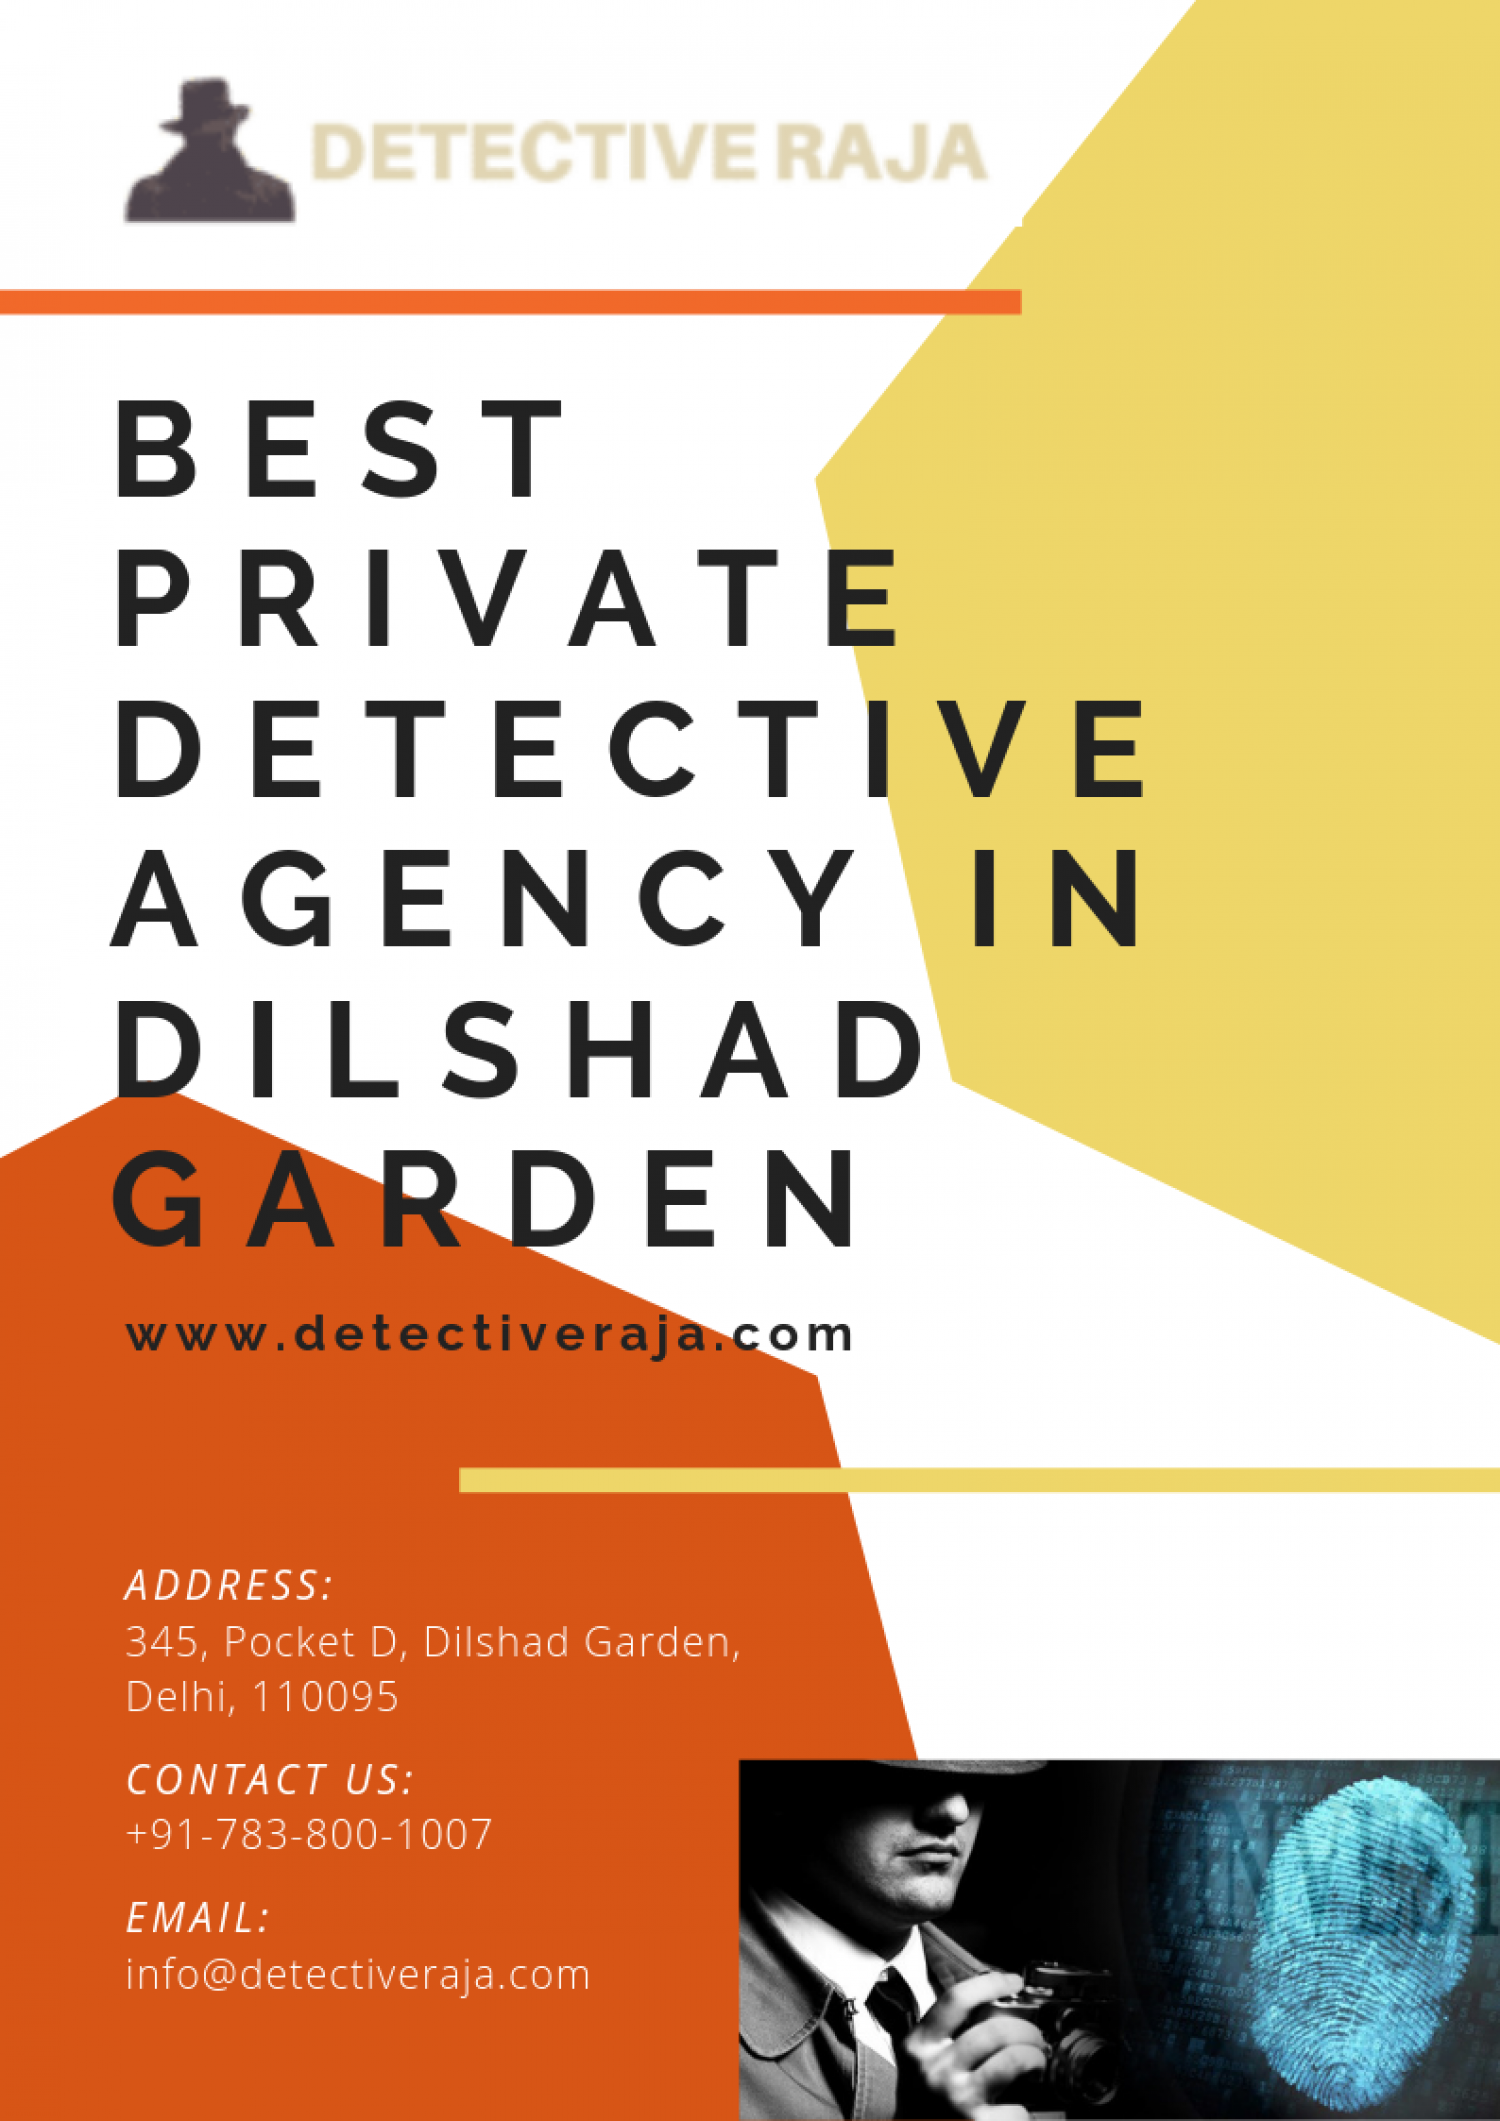 Best Private Detective Agency In Dilshad Garden Infographic